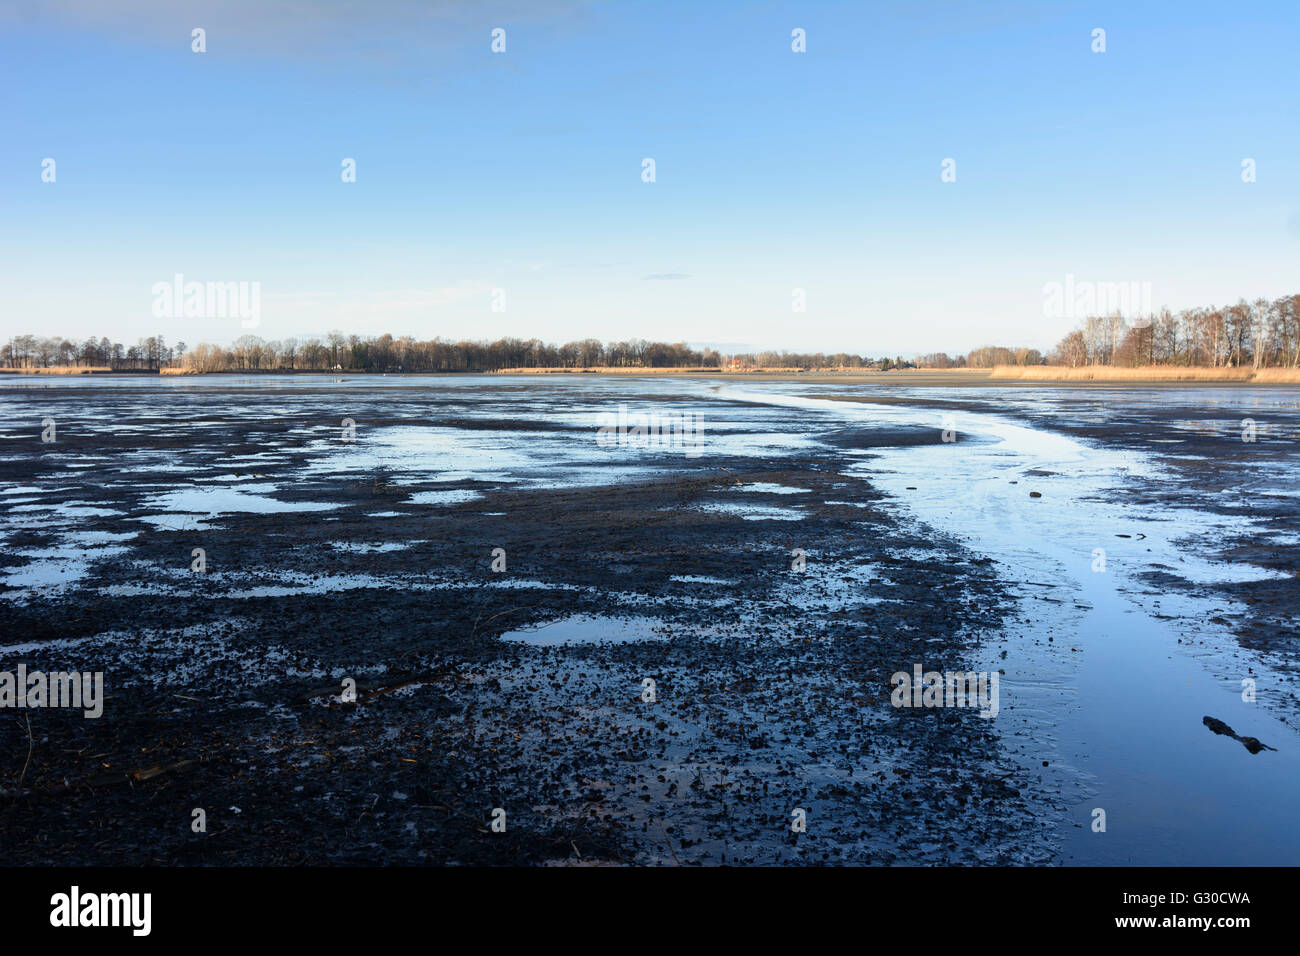 drained pond Hälterteich the Peitzer fishponds, Germany, Brandenburg , Peitz - Stock Image